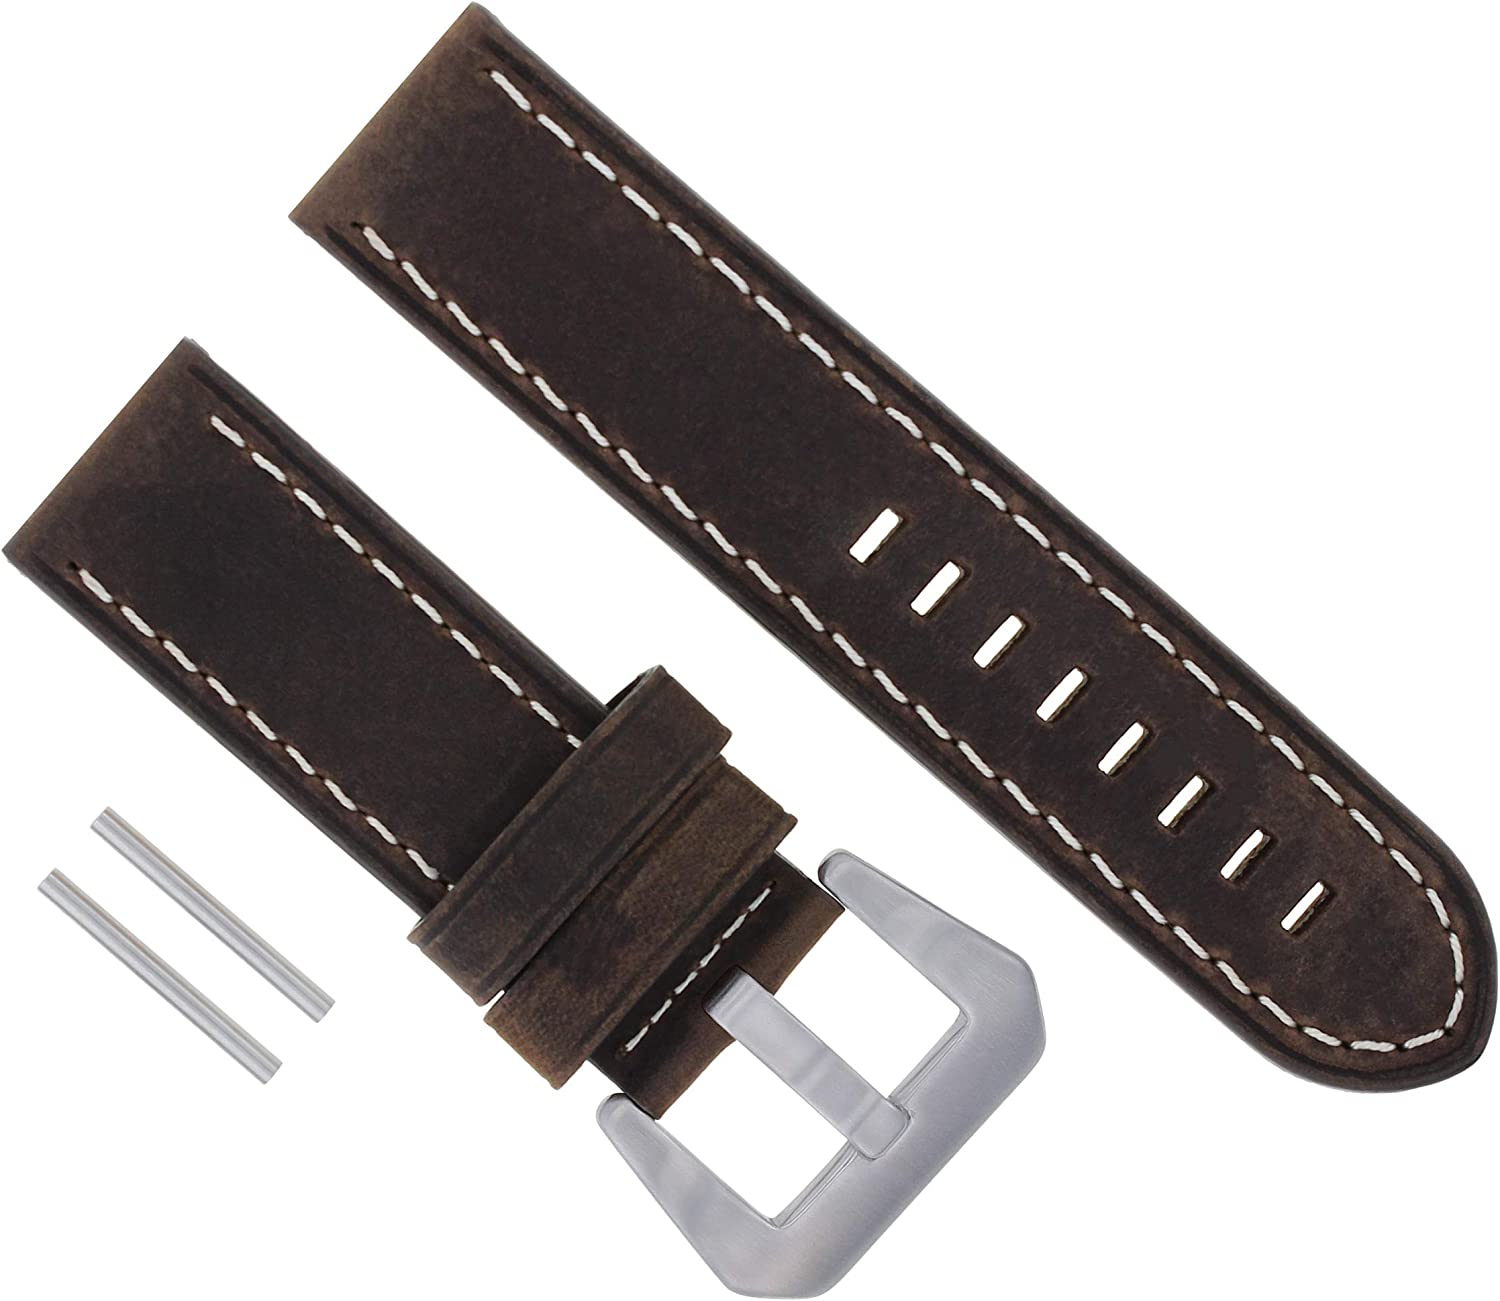 24mm Cow Leather Max 65% OFF Watch Band Strap Compatible with Great interest Pam Lu Panerai